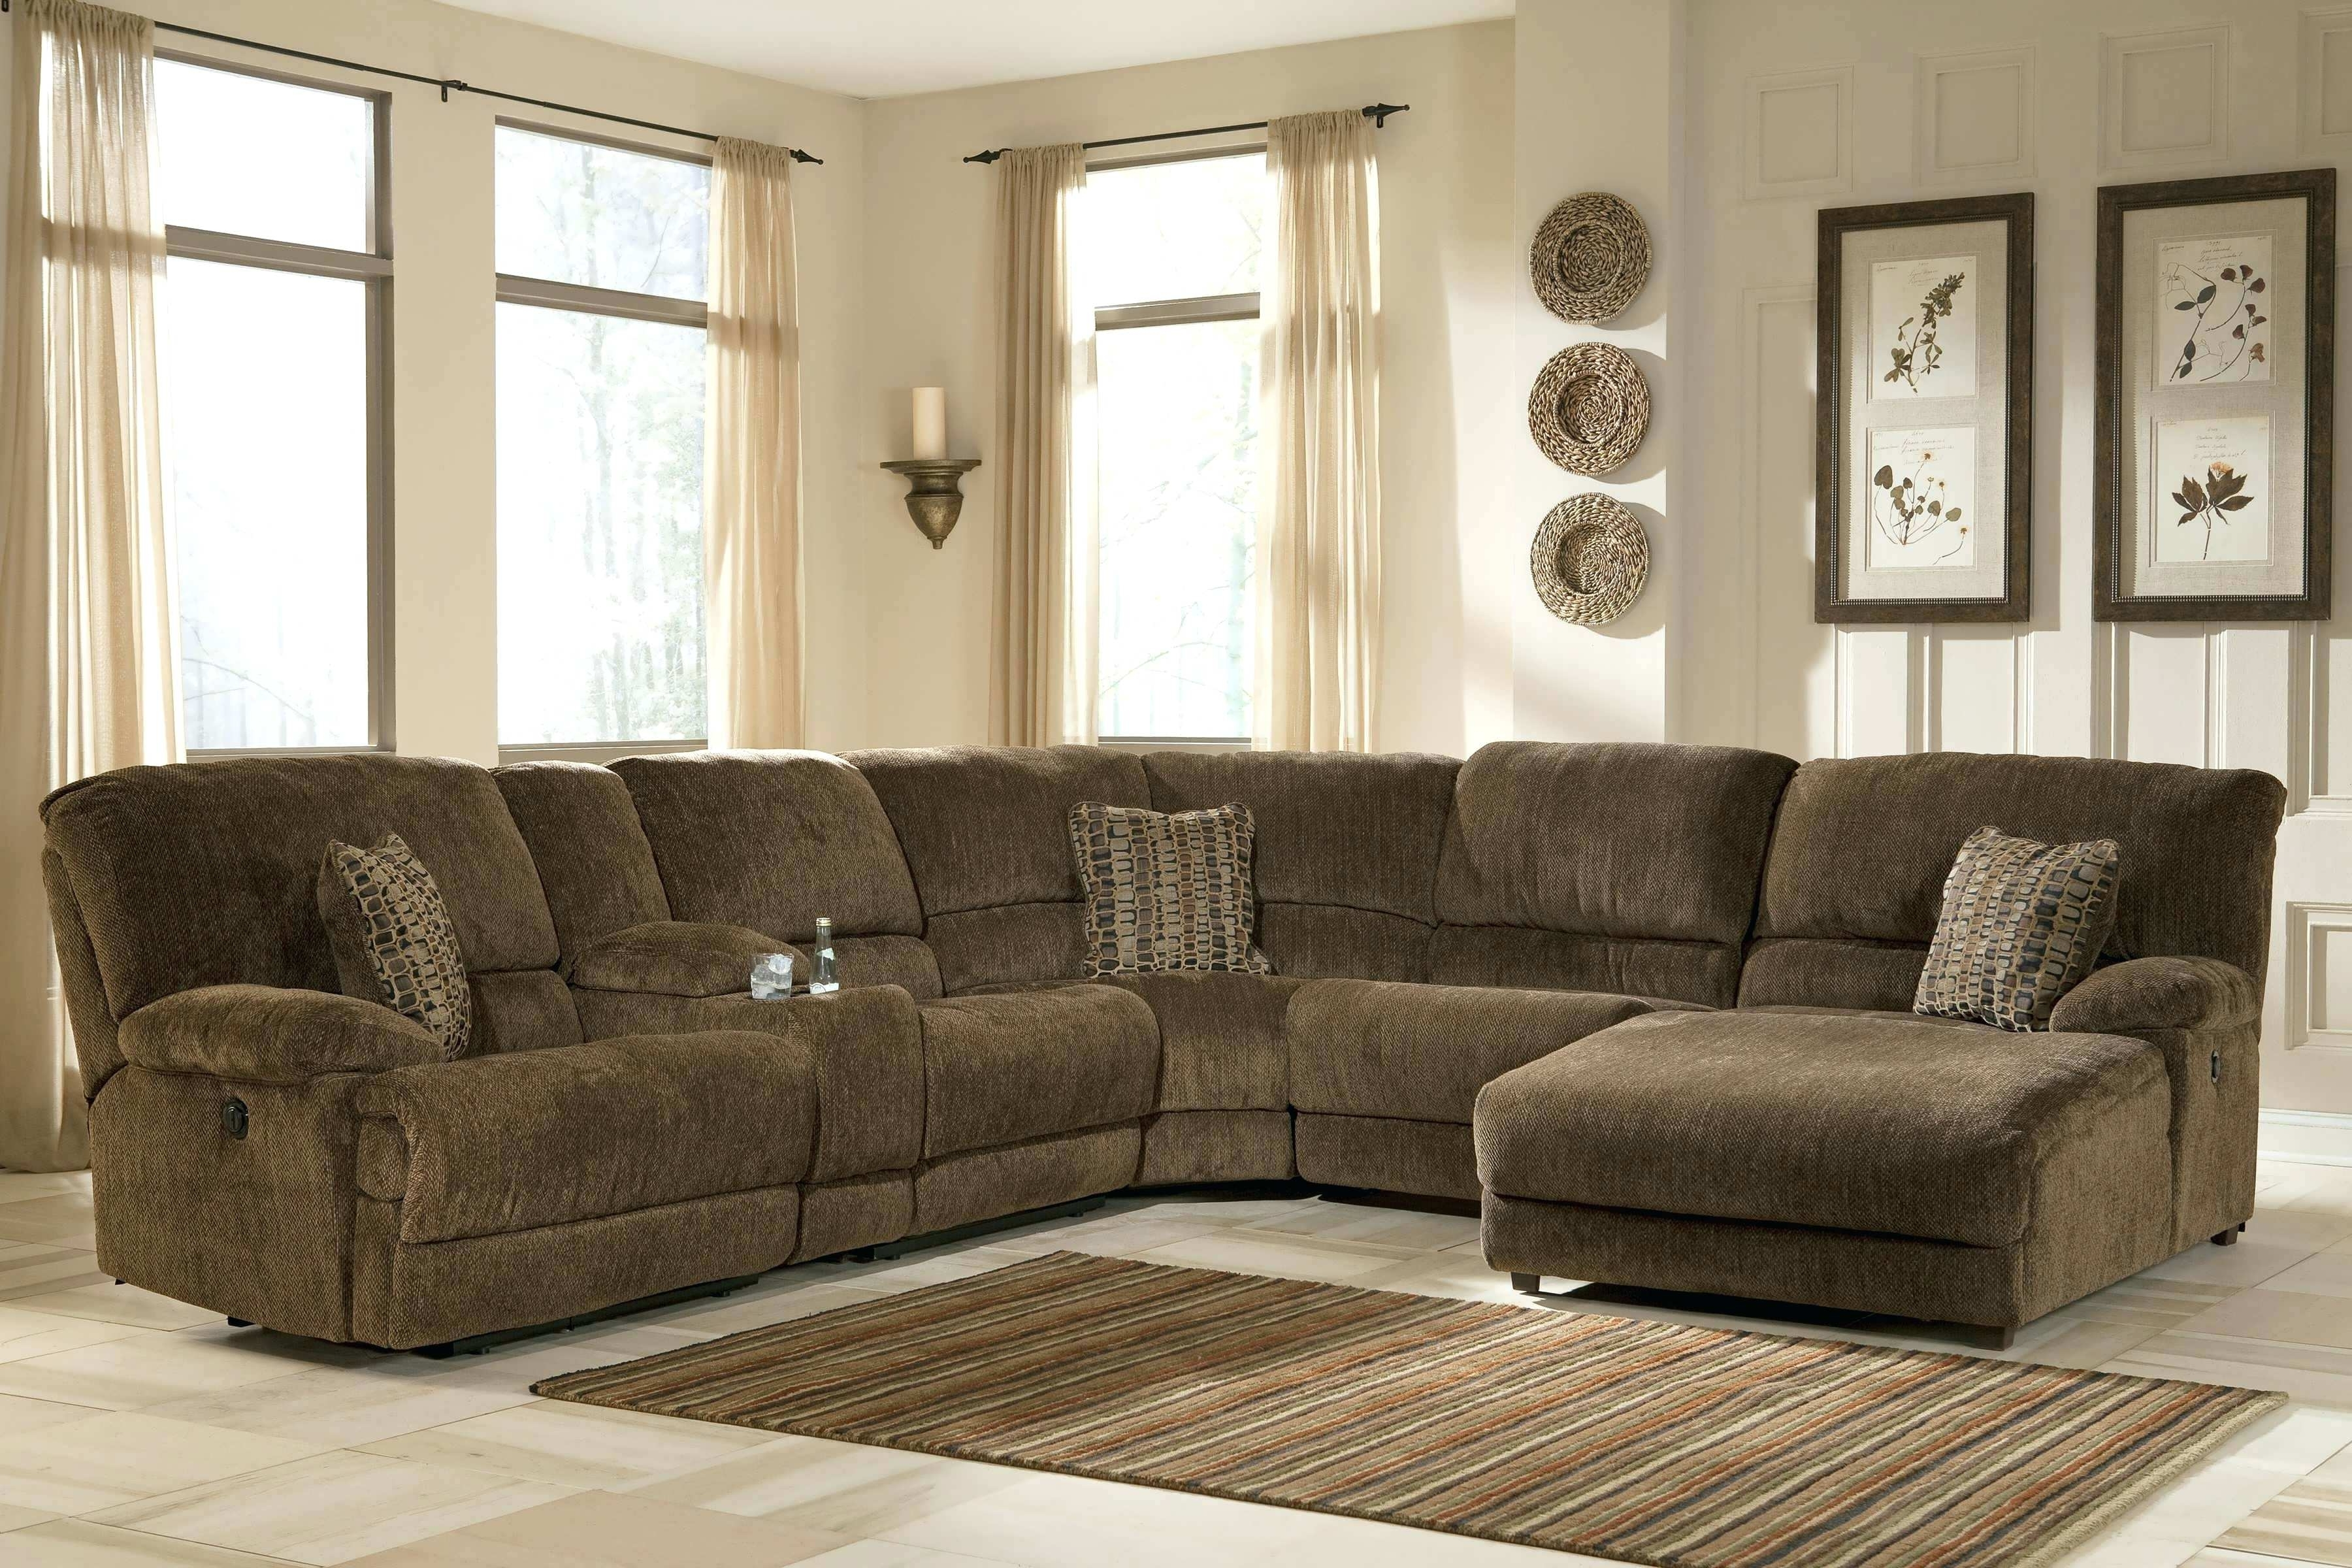 Pottery Barn Seabury Sectional Sofa Turner Leather Reviews Couch Intended For Latest Pottery Barn Sectional Sofas (View 6 of 15)